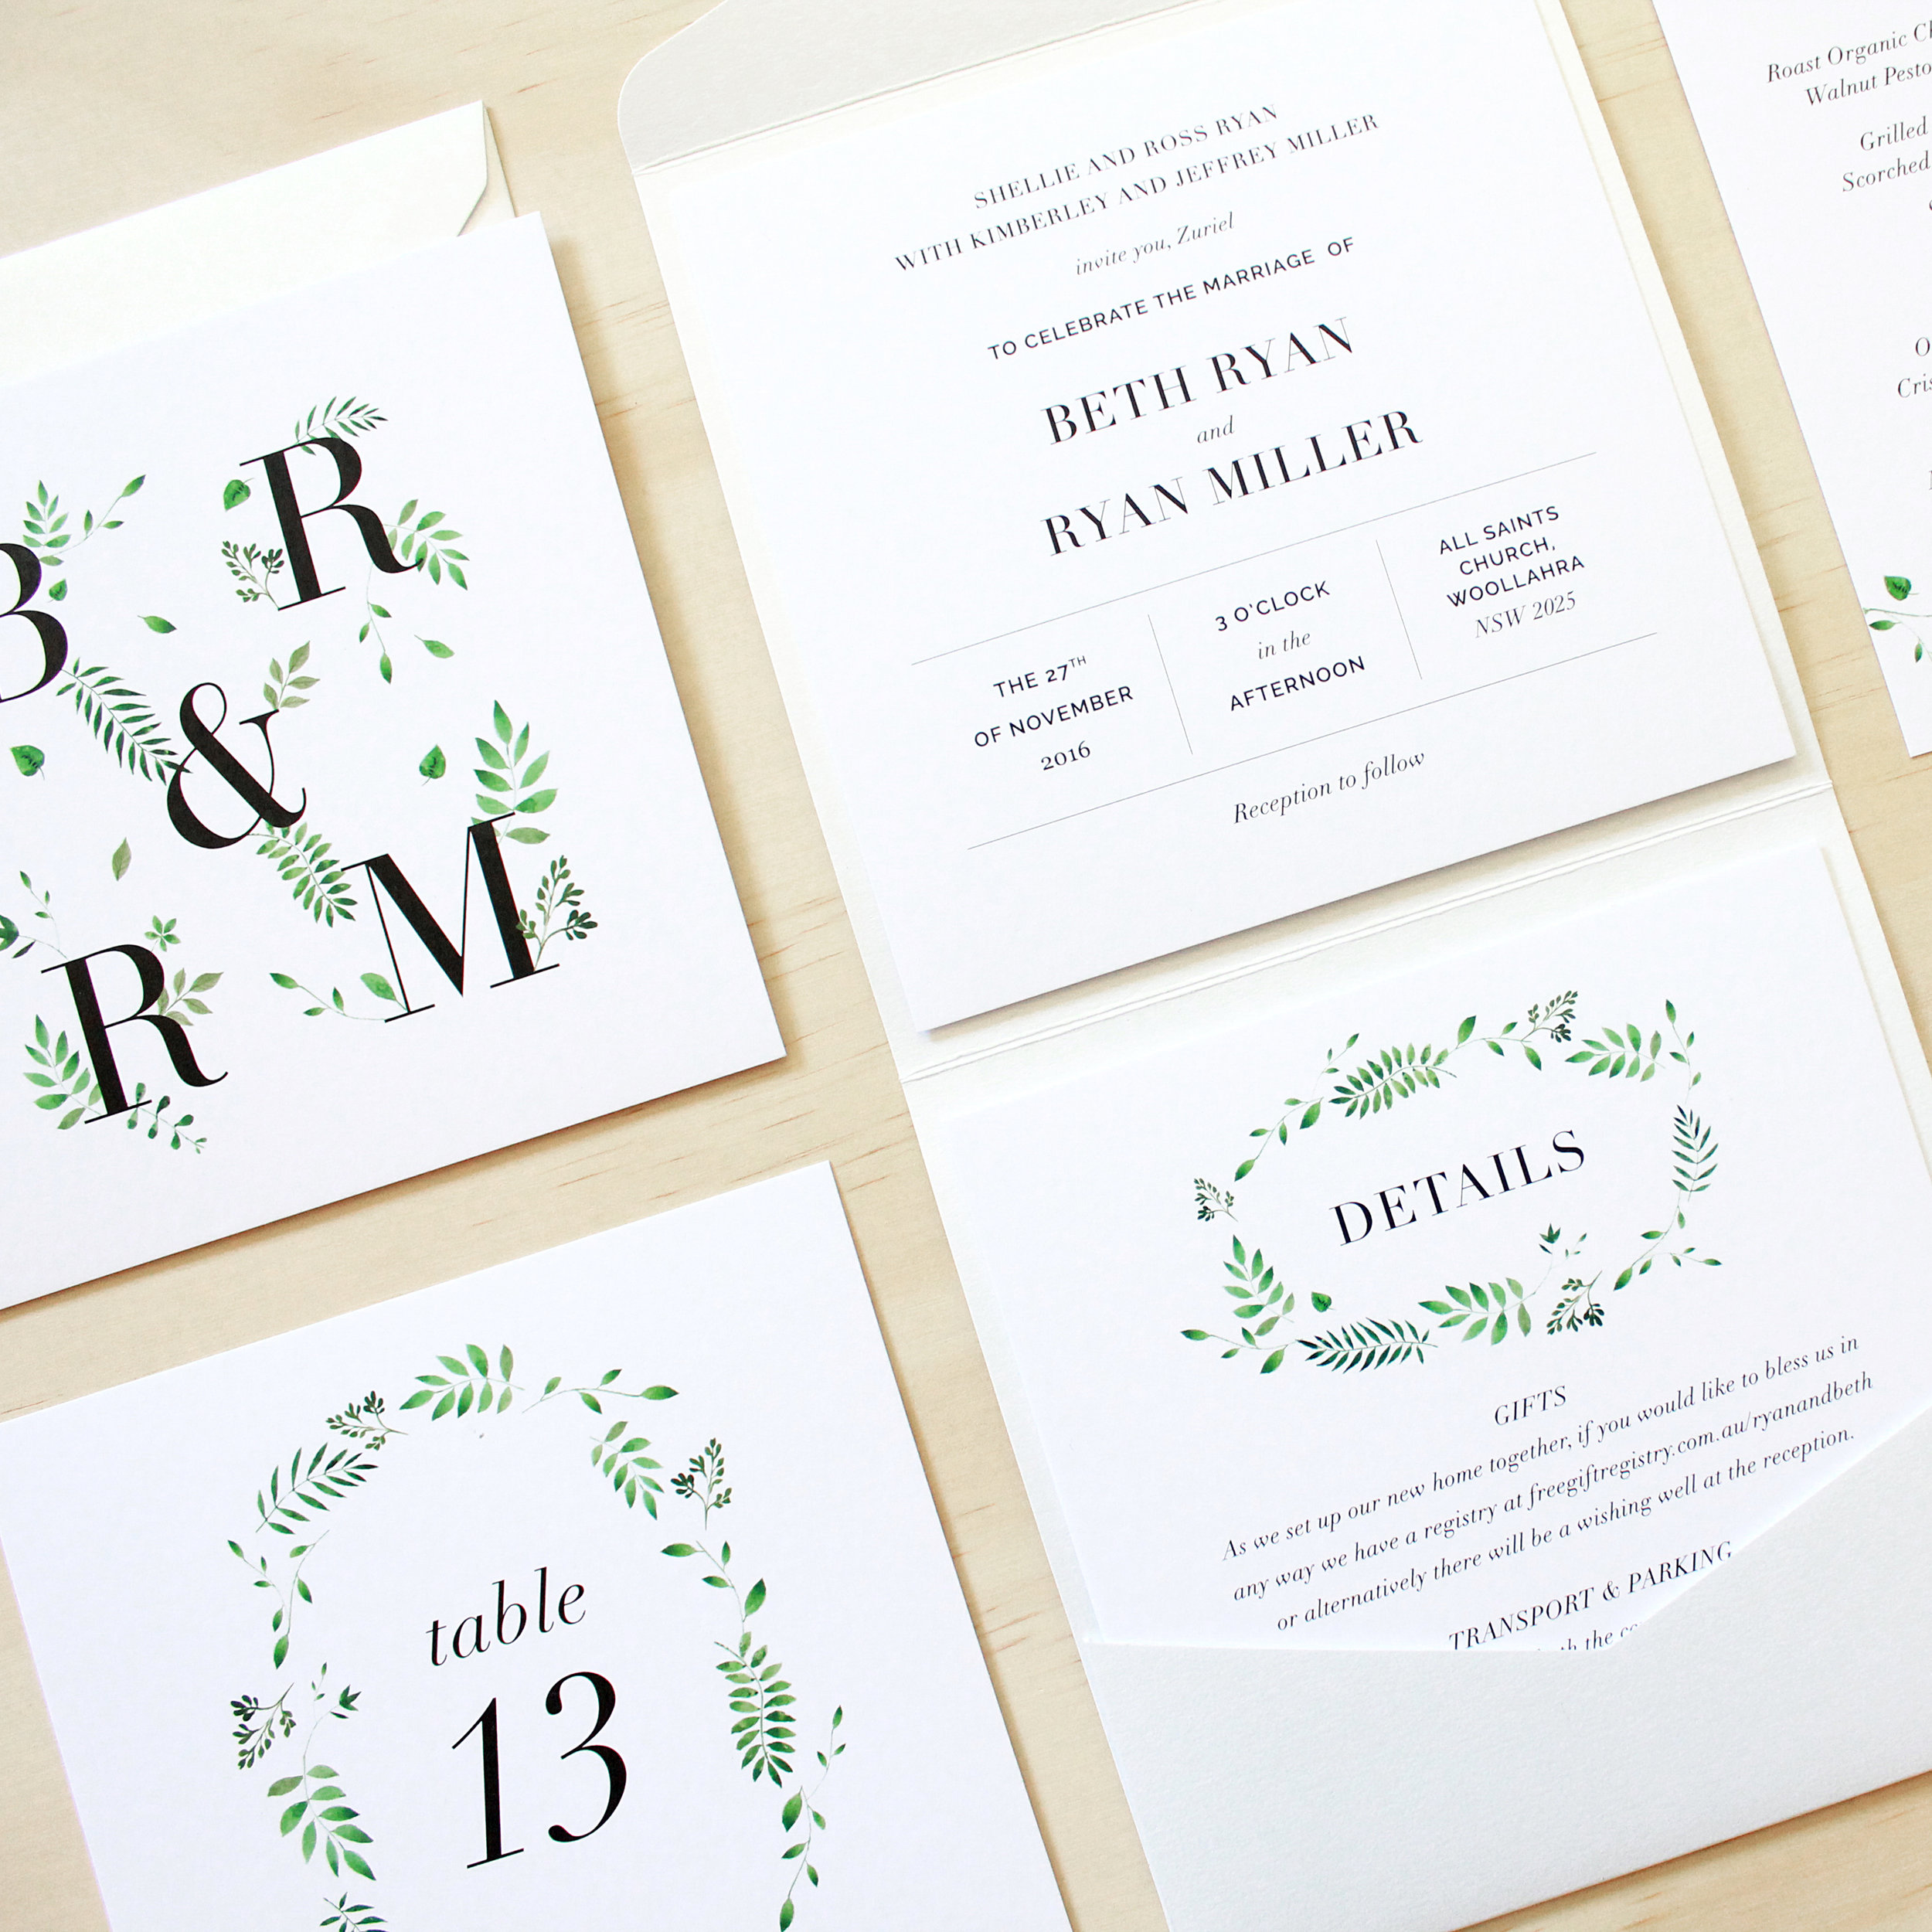 Beth + Ryan Stationery.jpg